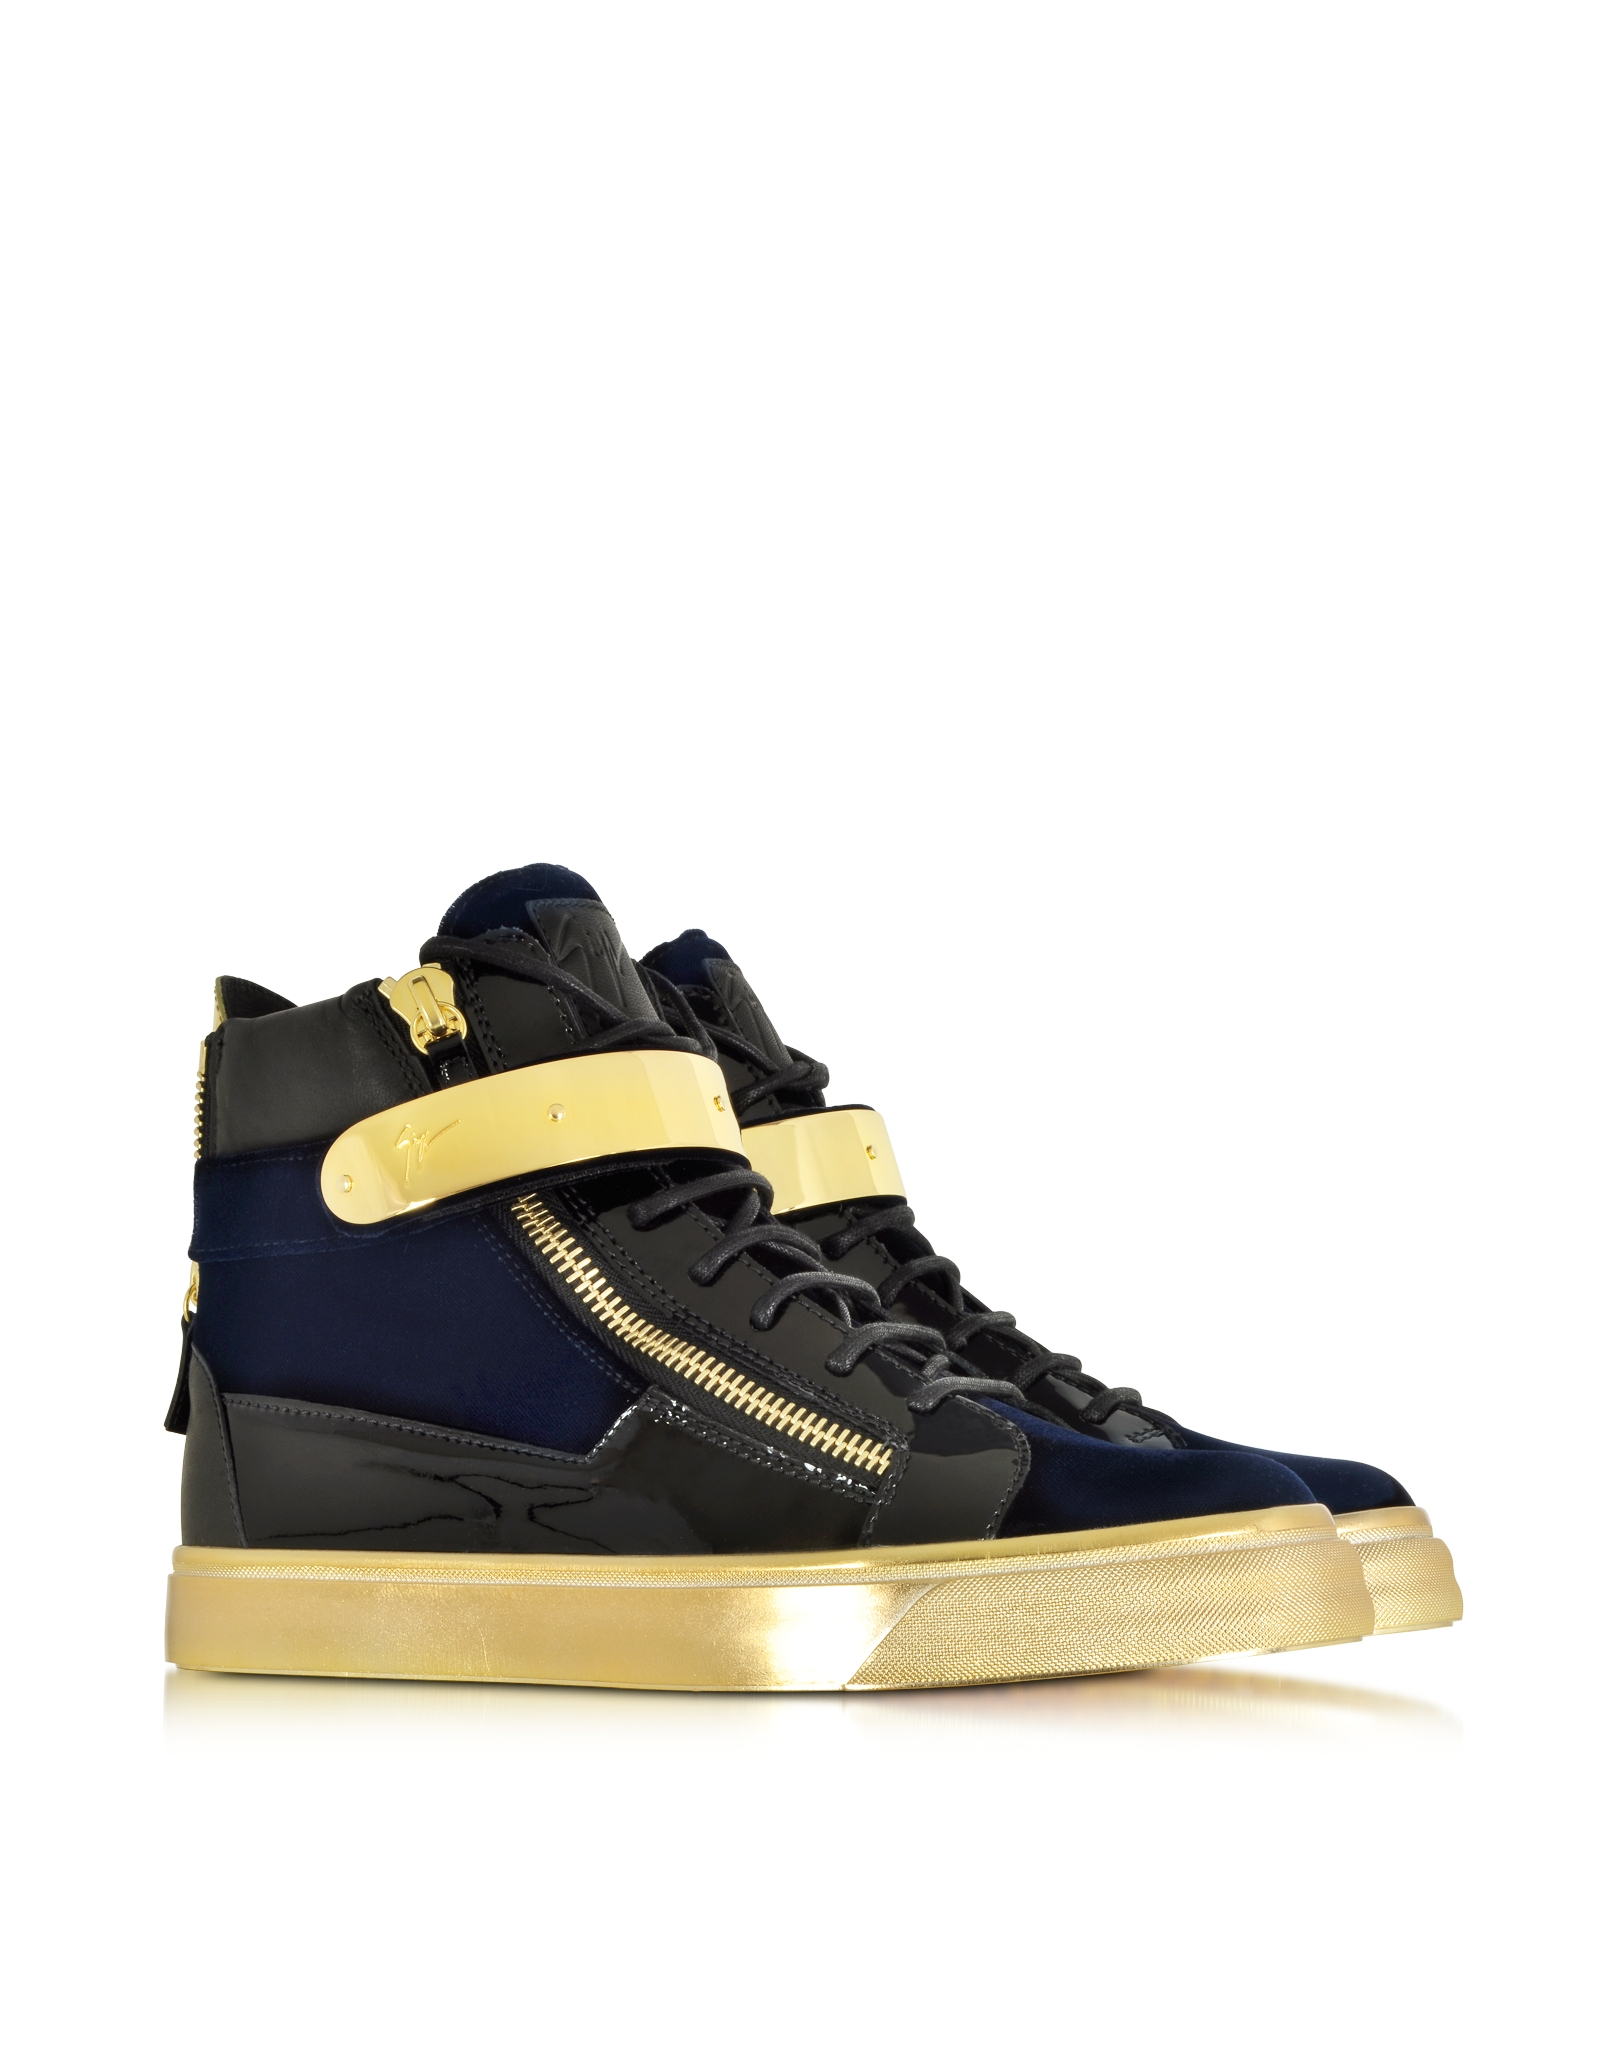 Giuseppe Zanotti Dark velvet and patent leather high-top sneakers COBY WlGMsQ70ql